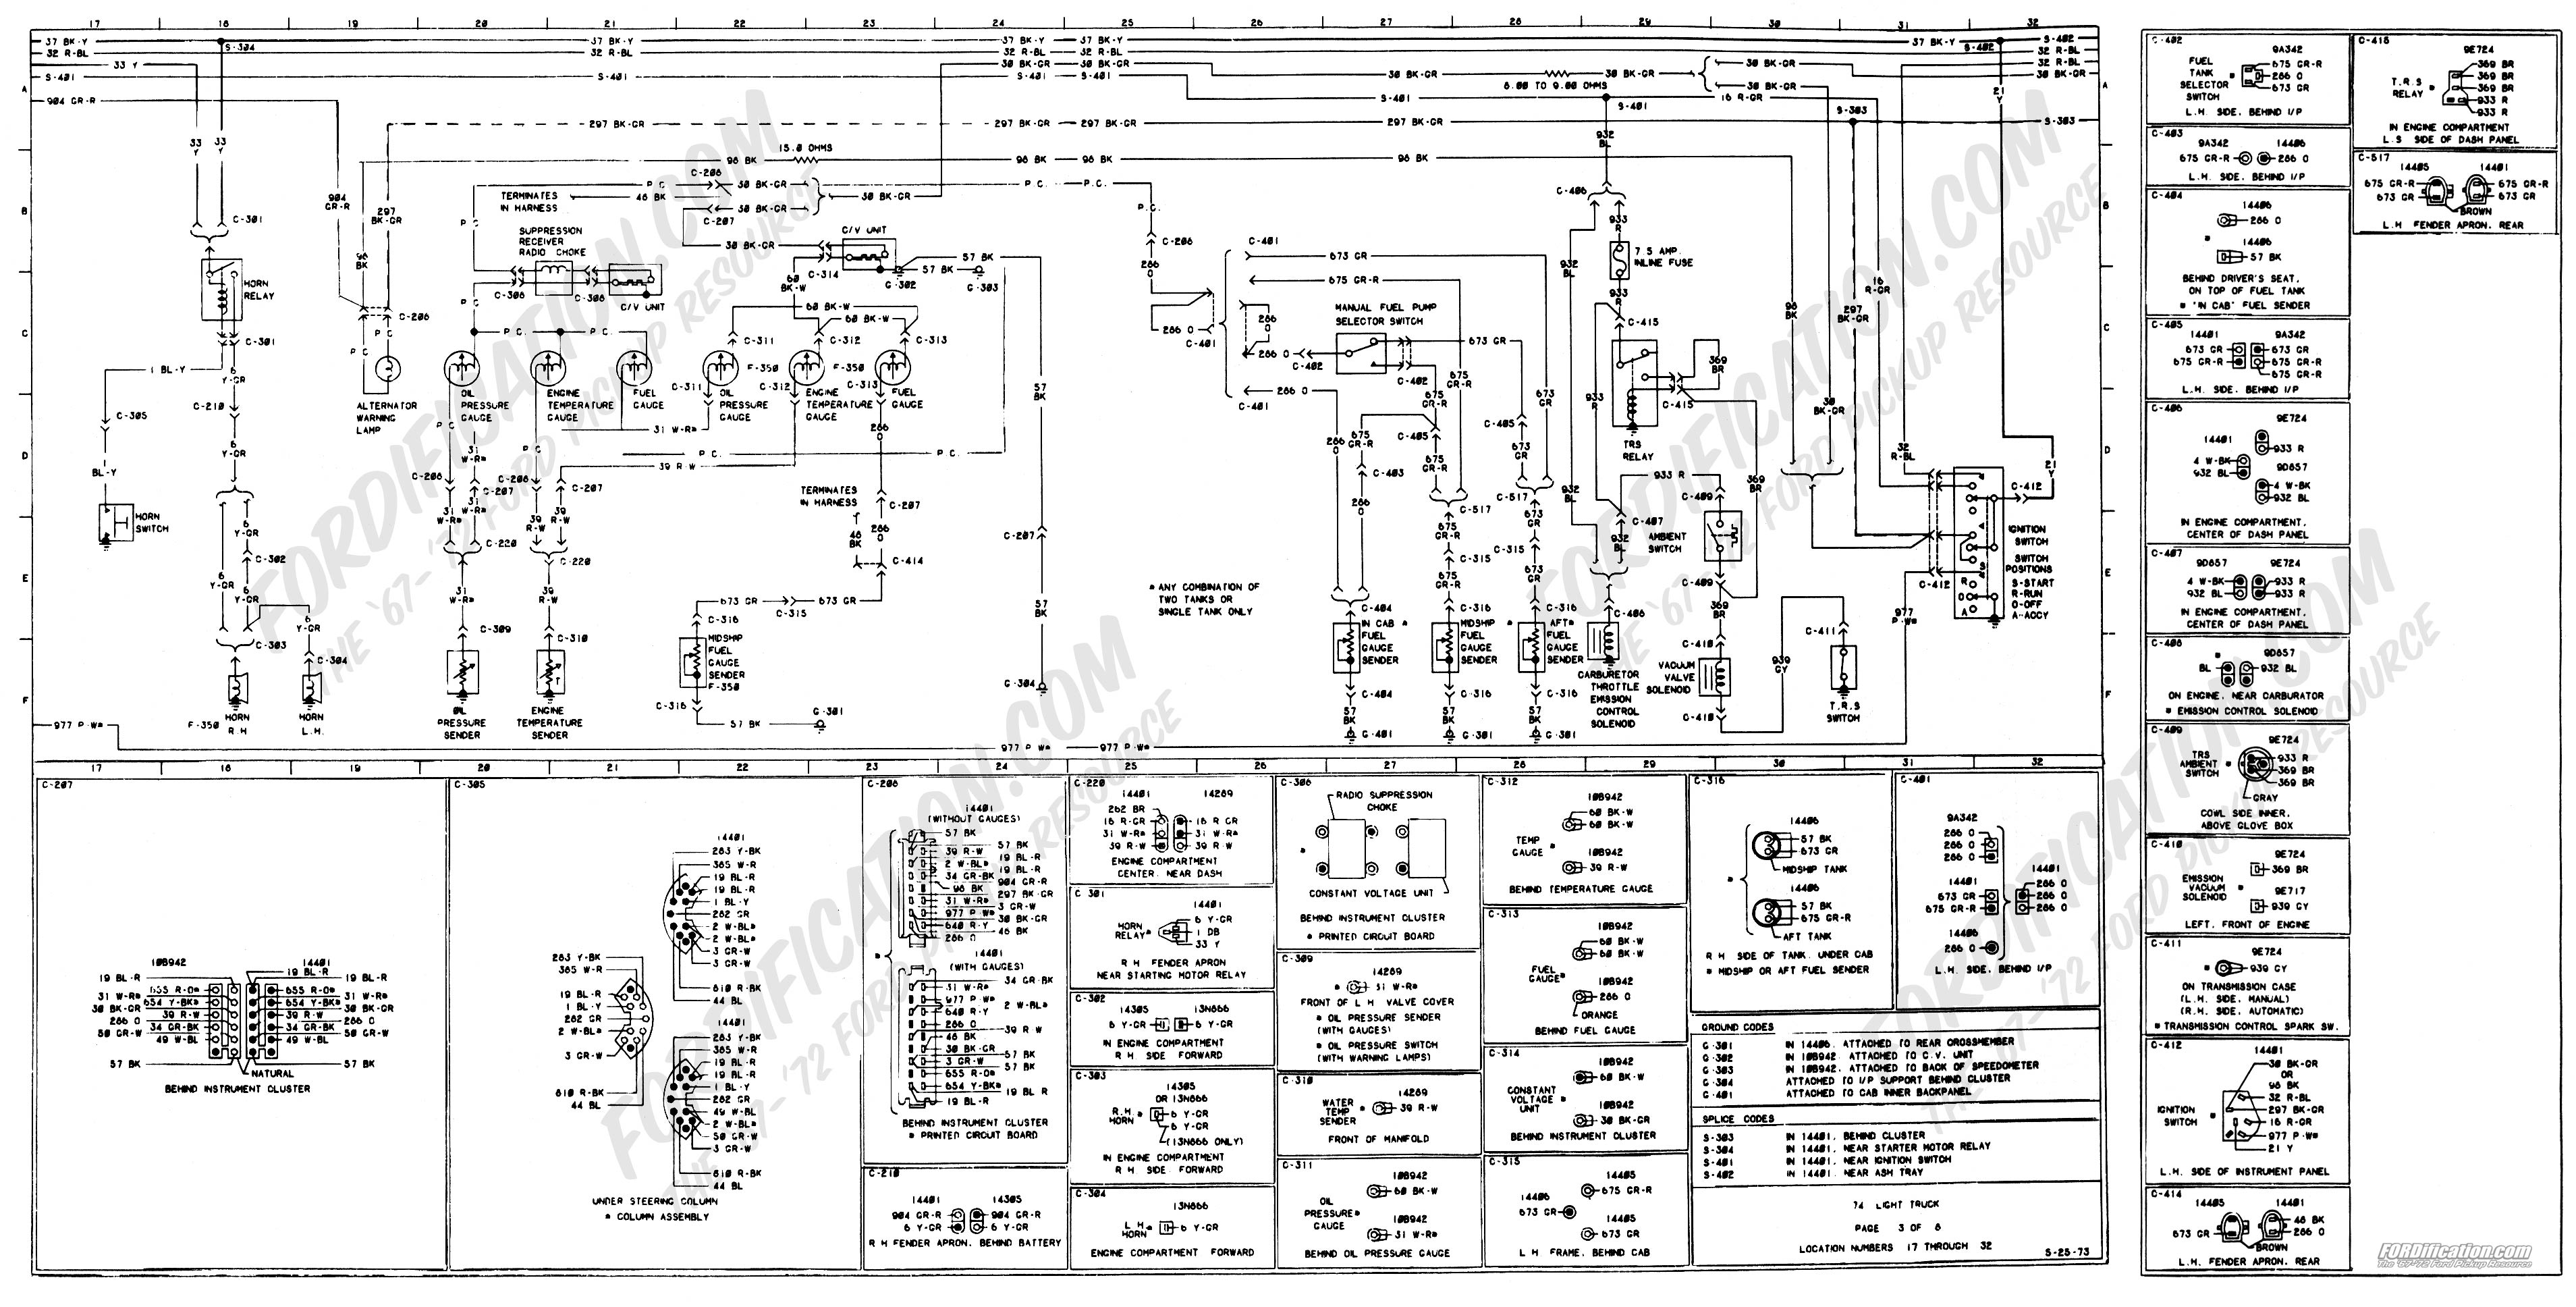 wiring_74master_3of8 1973 1979 ford truck wiring diagrams & schematics fordification net ford transit connect wiring diagram pdf at soozxer.org